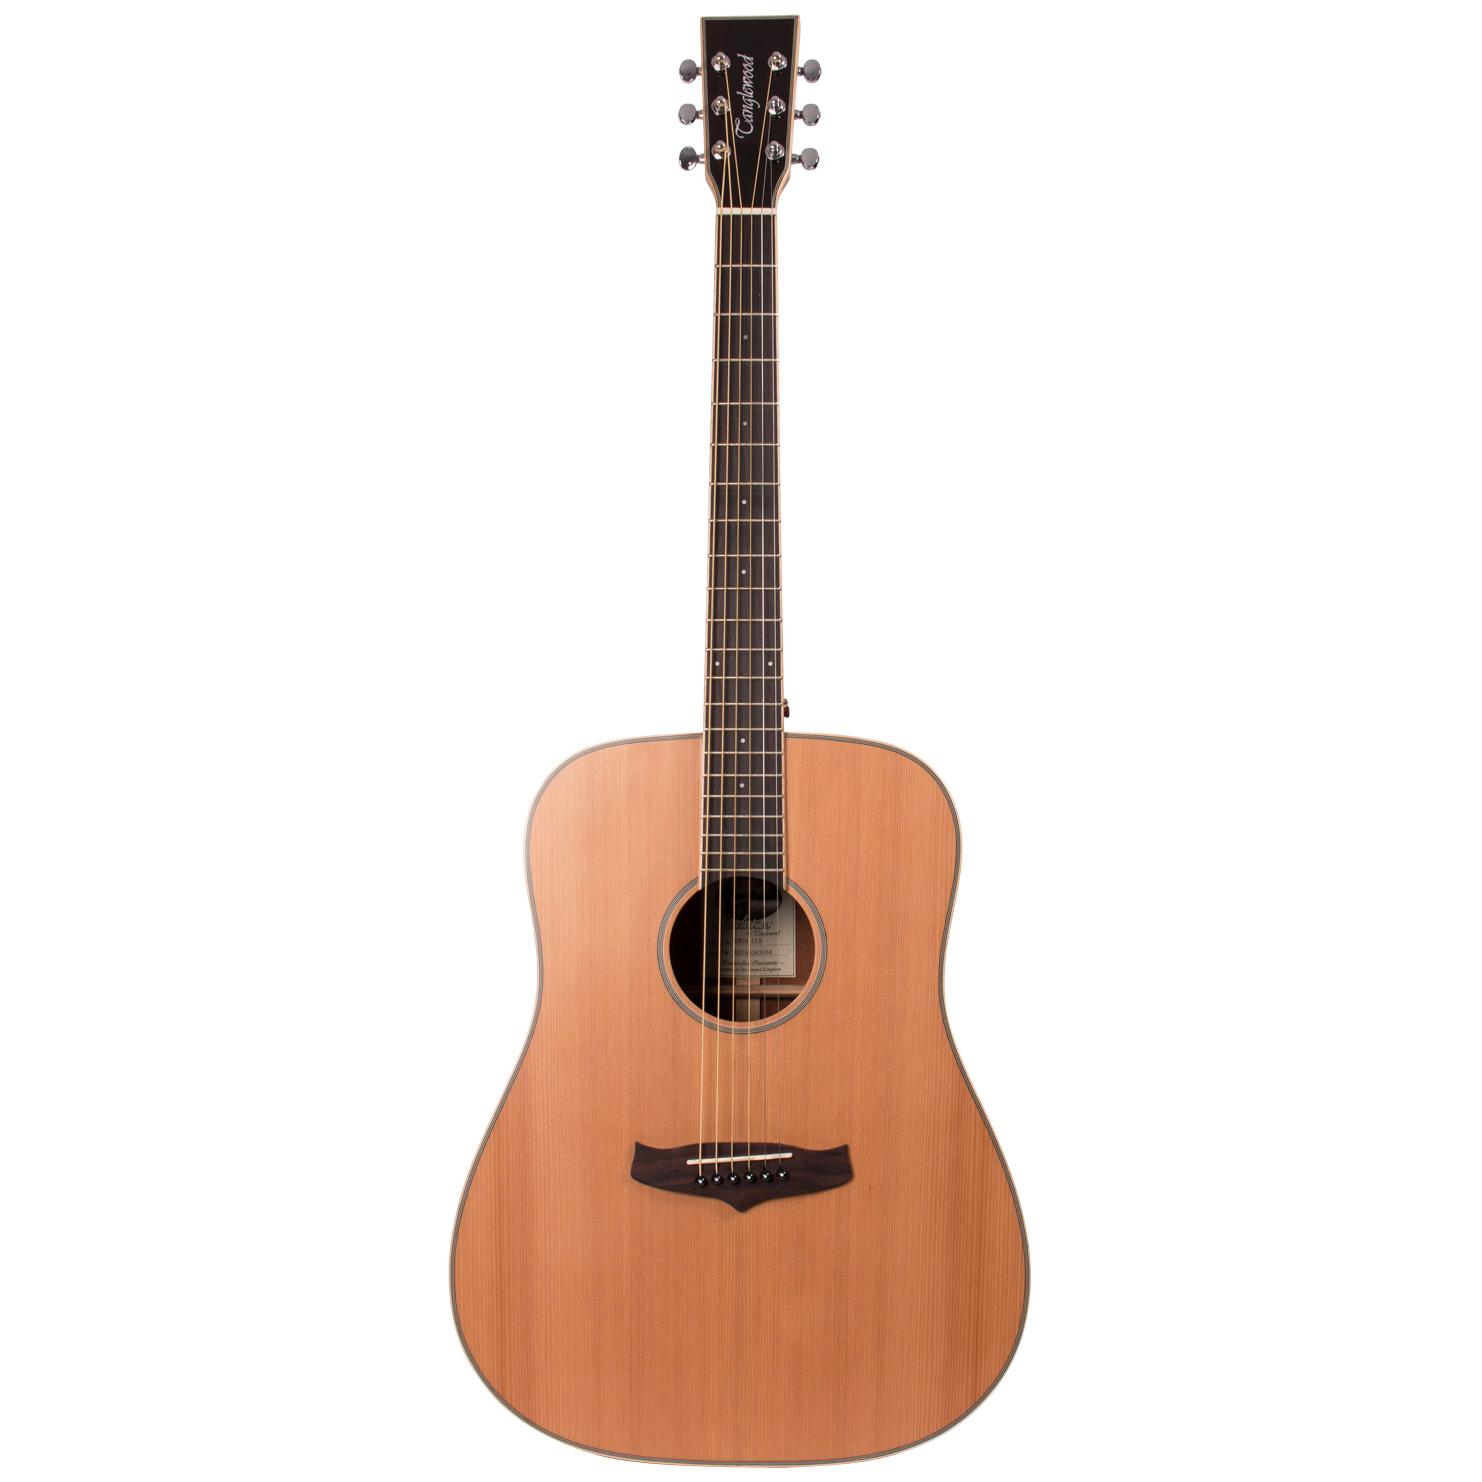 Tanglewood tw28 cln westerngitarre kaufen bax shop for The tanglewood